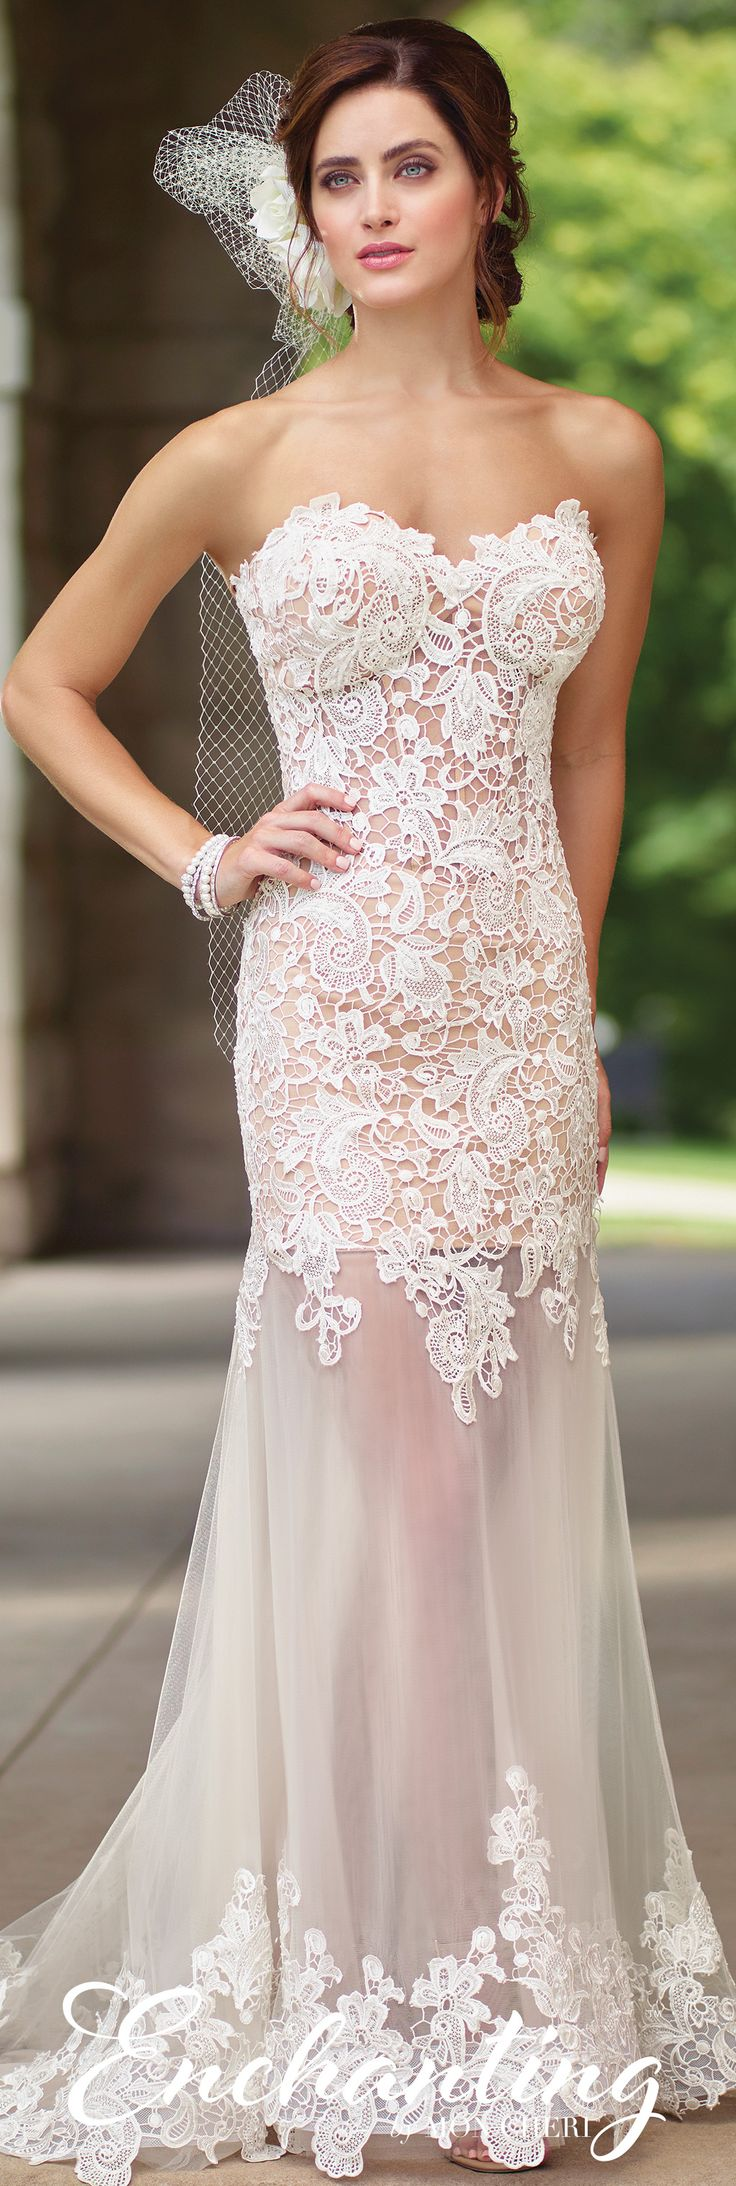 107 besten Unique Wedding Dresses Bilder auf Pinterest ...